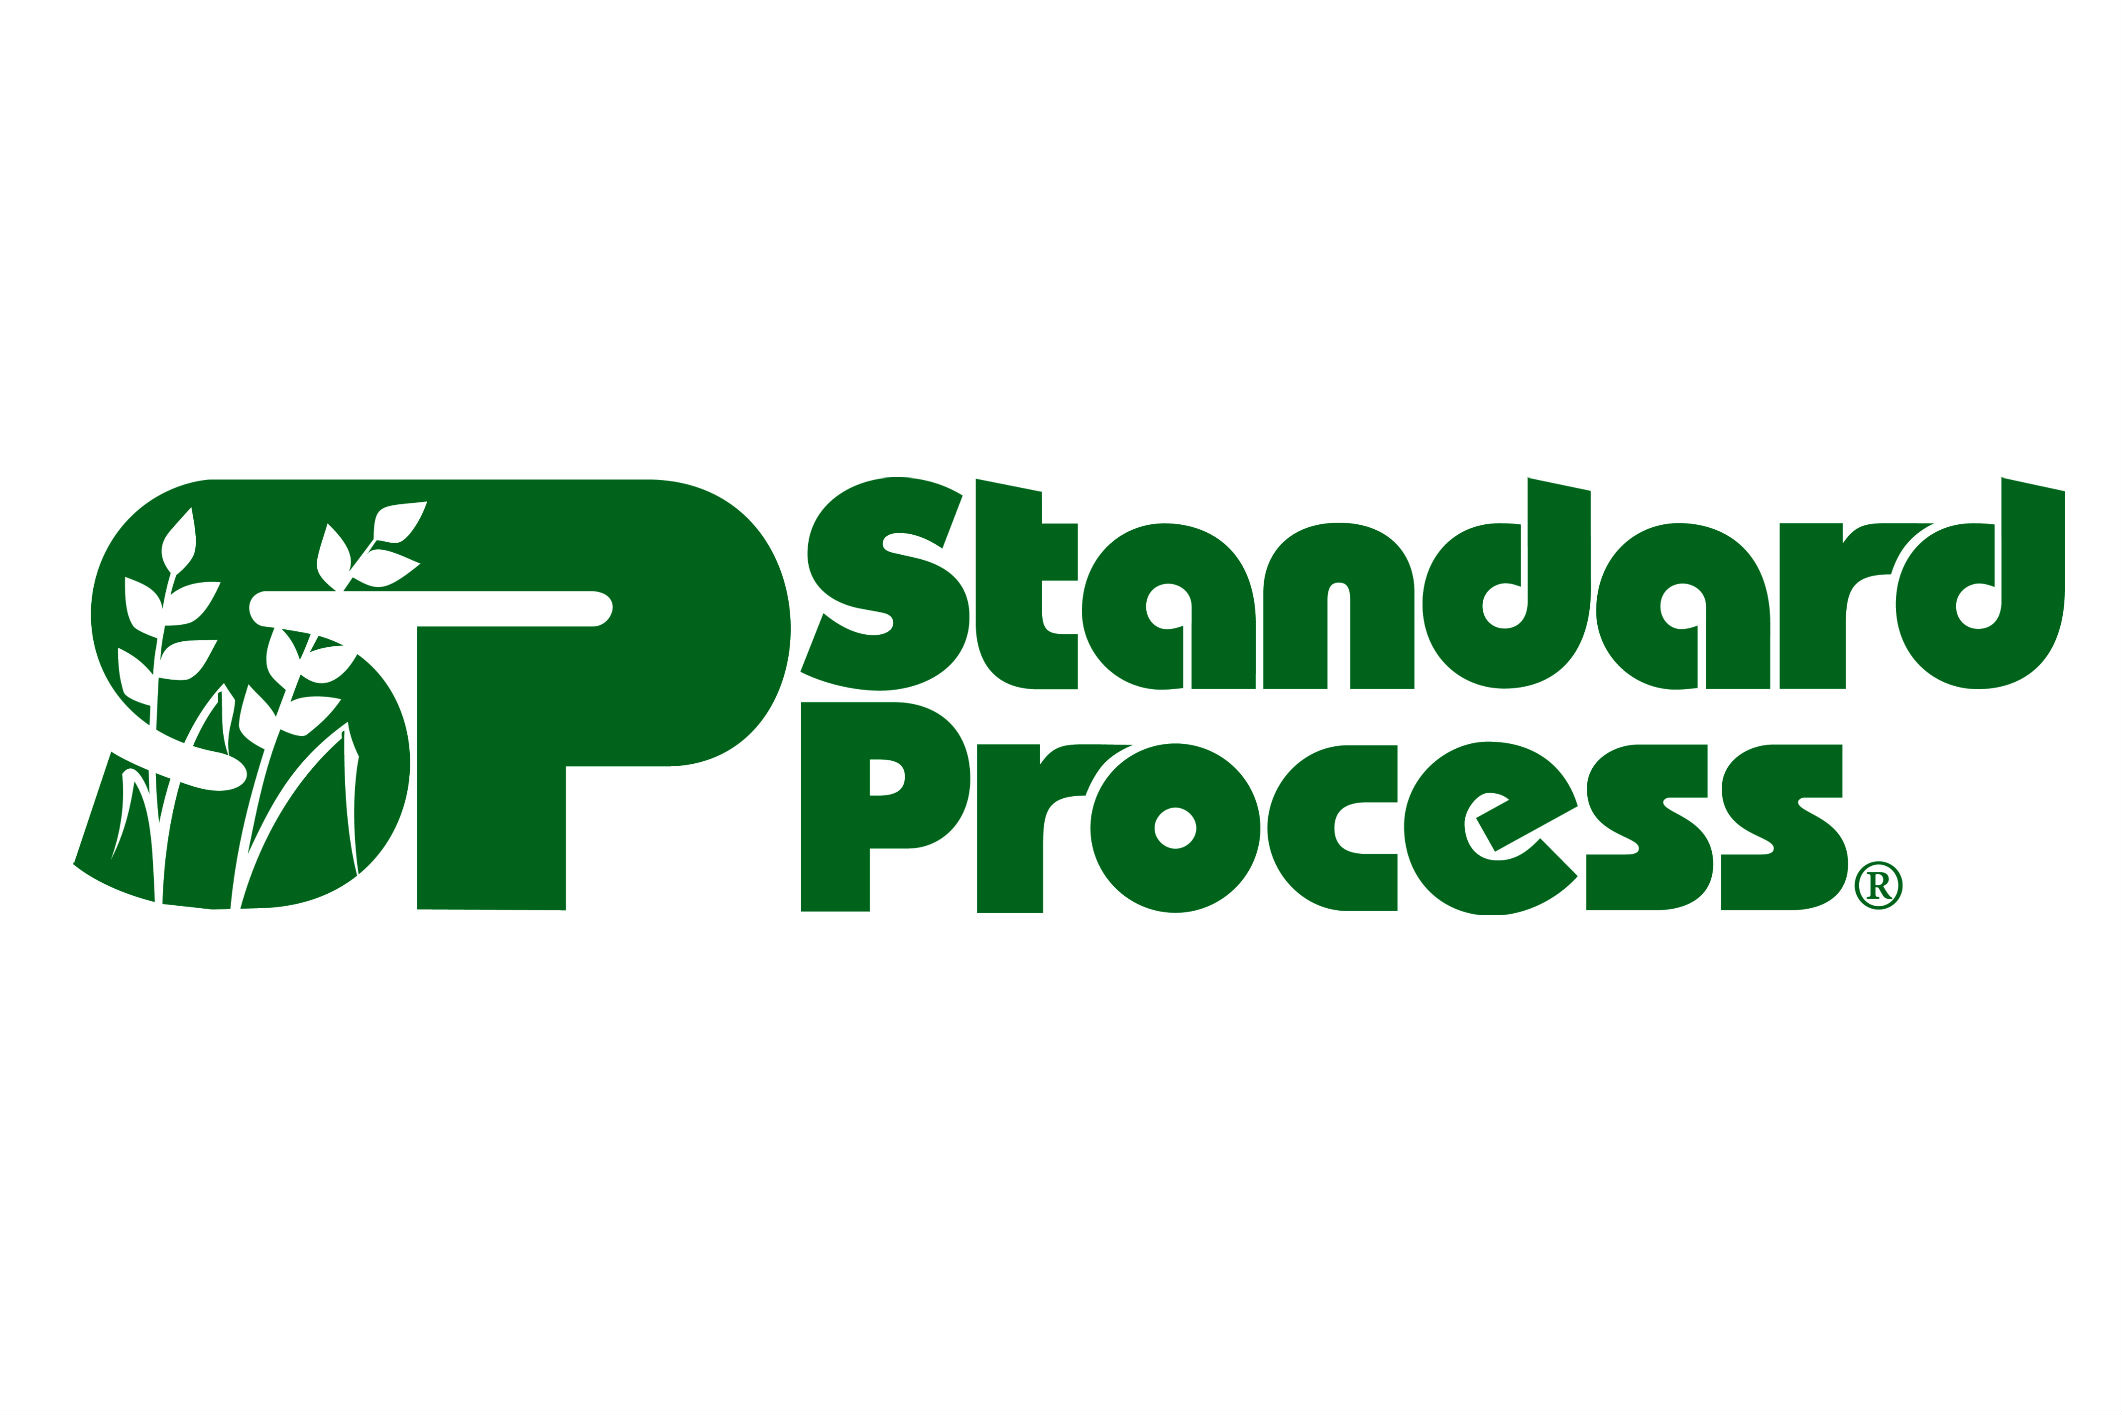 Standard-Process-Feature-Image.jpg